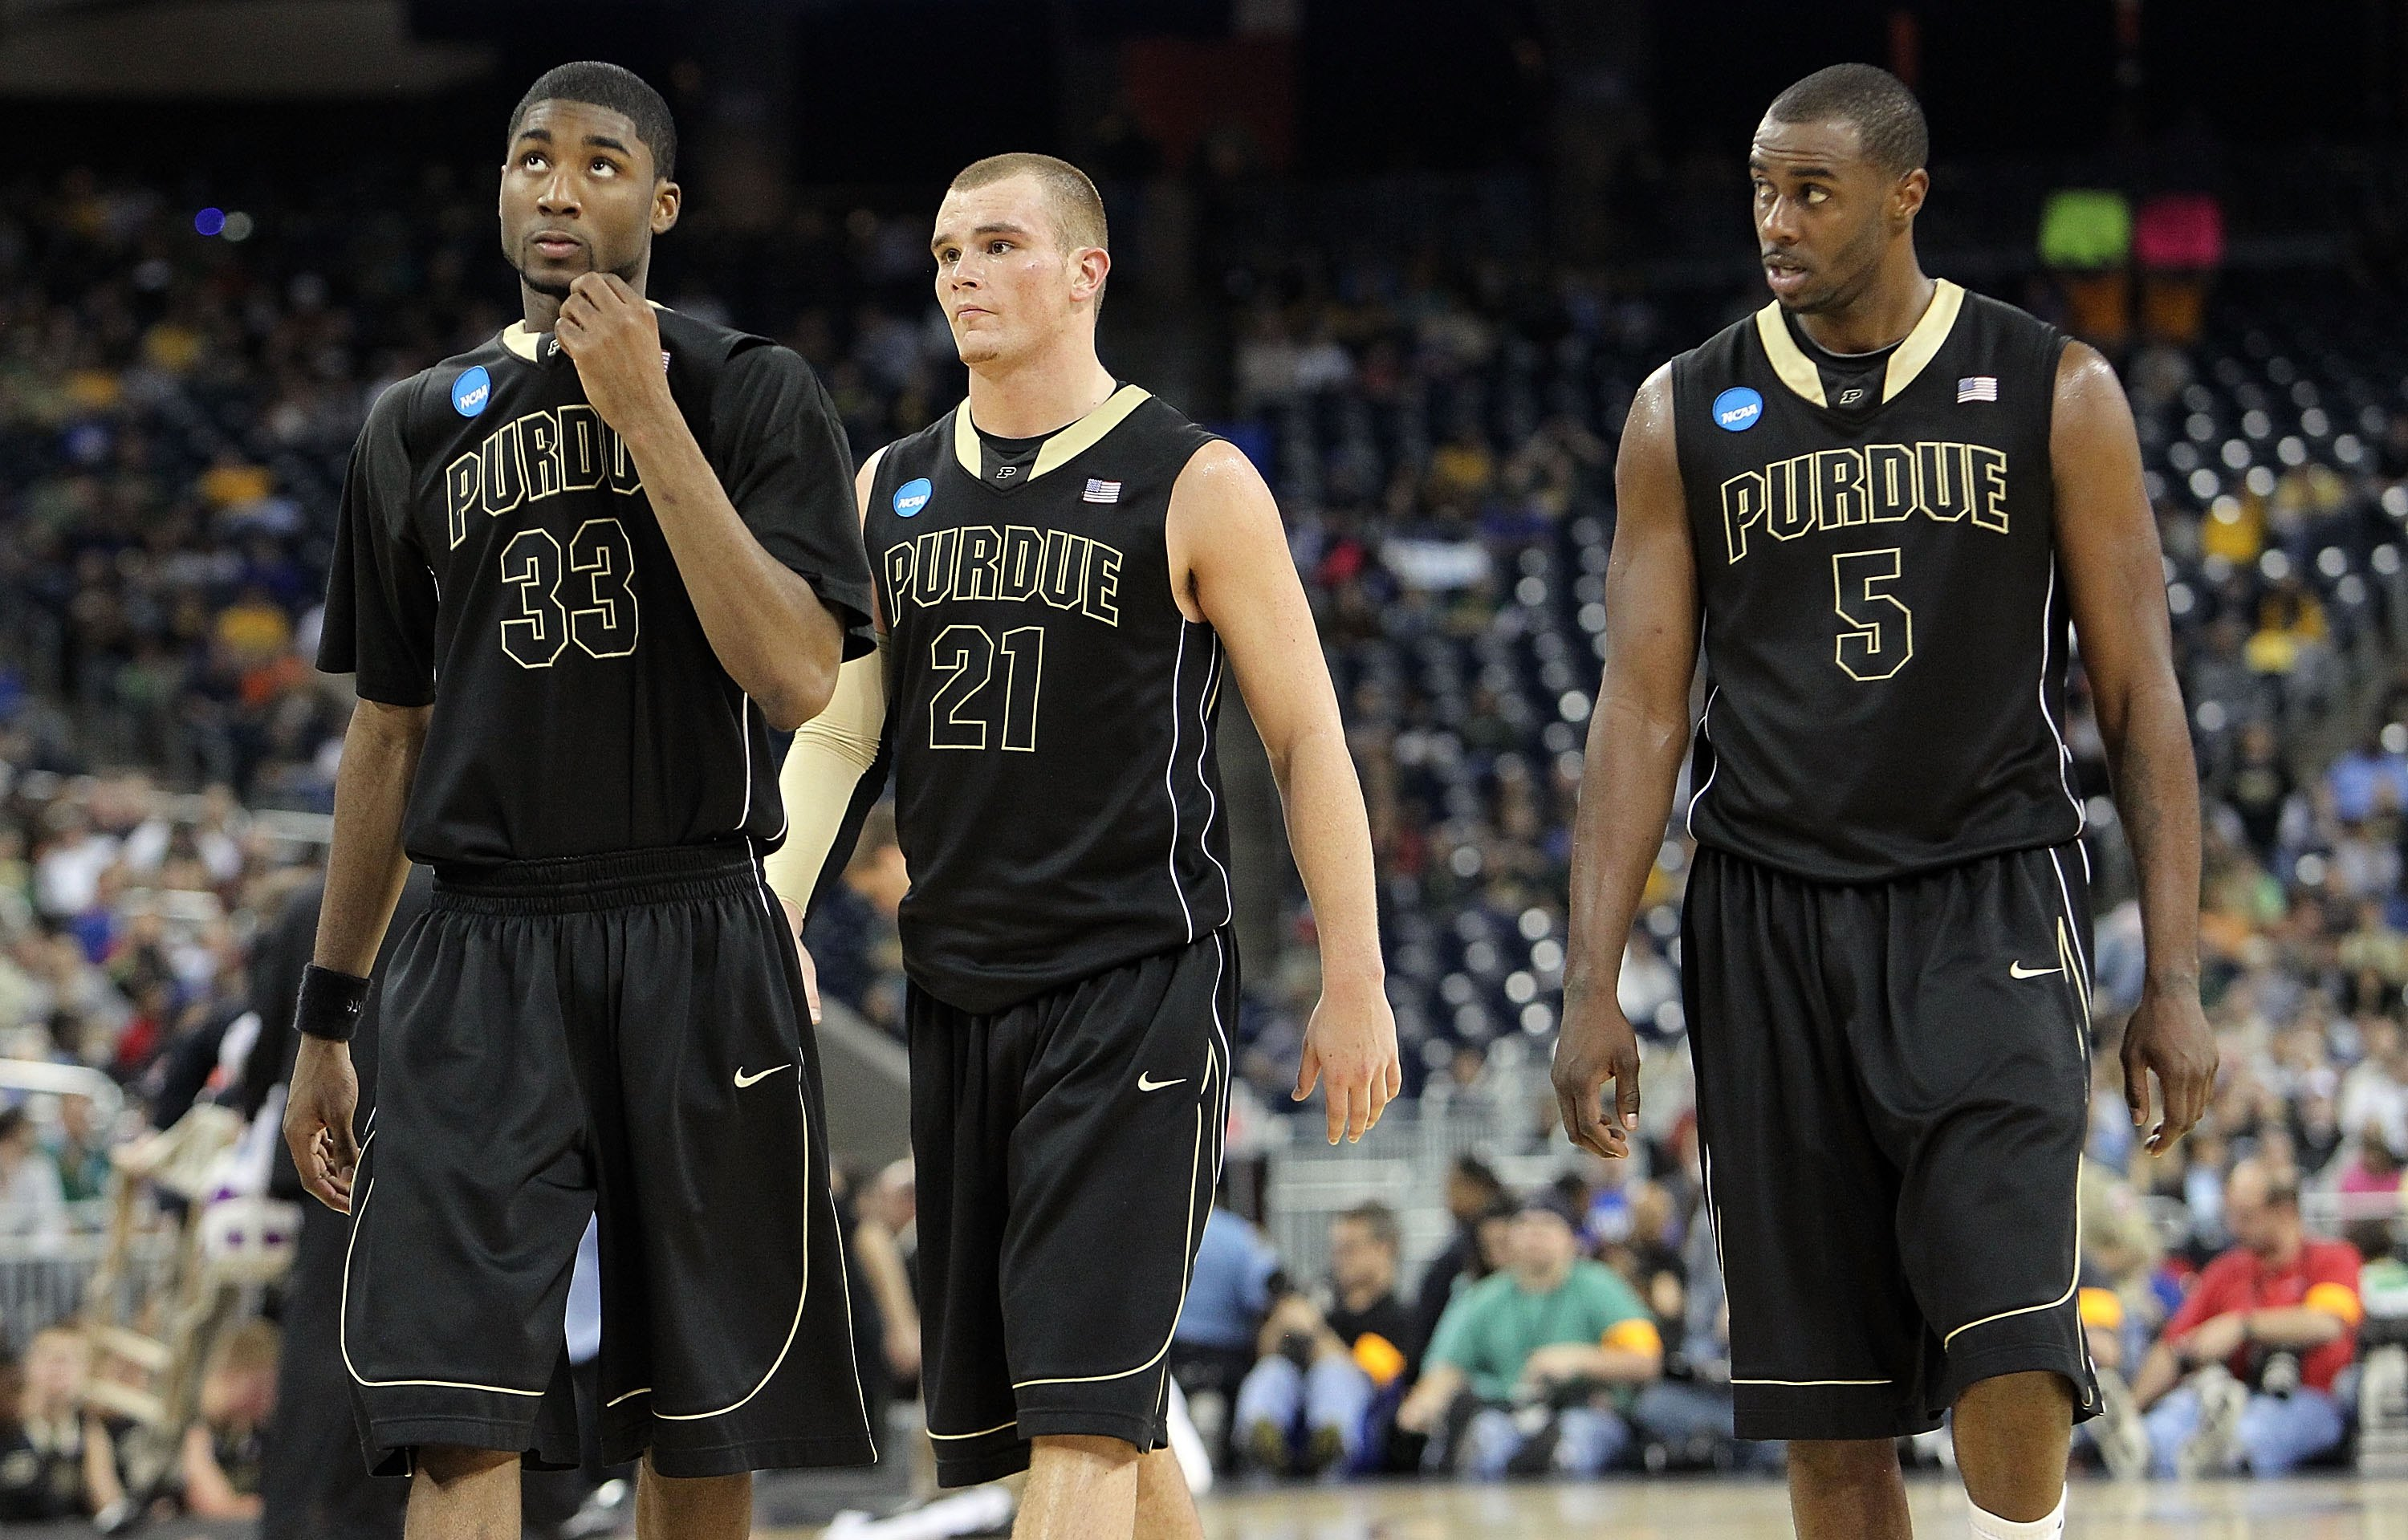 College Basketball Rankings 5 Underrated Teams To Keep An